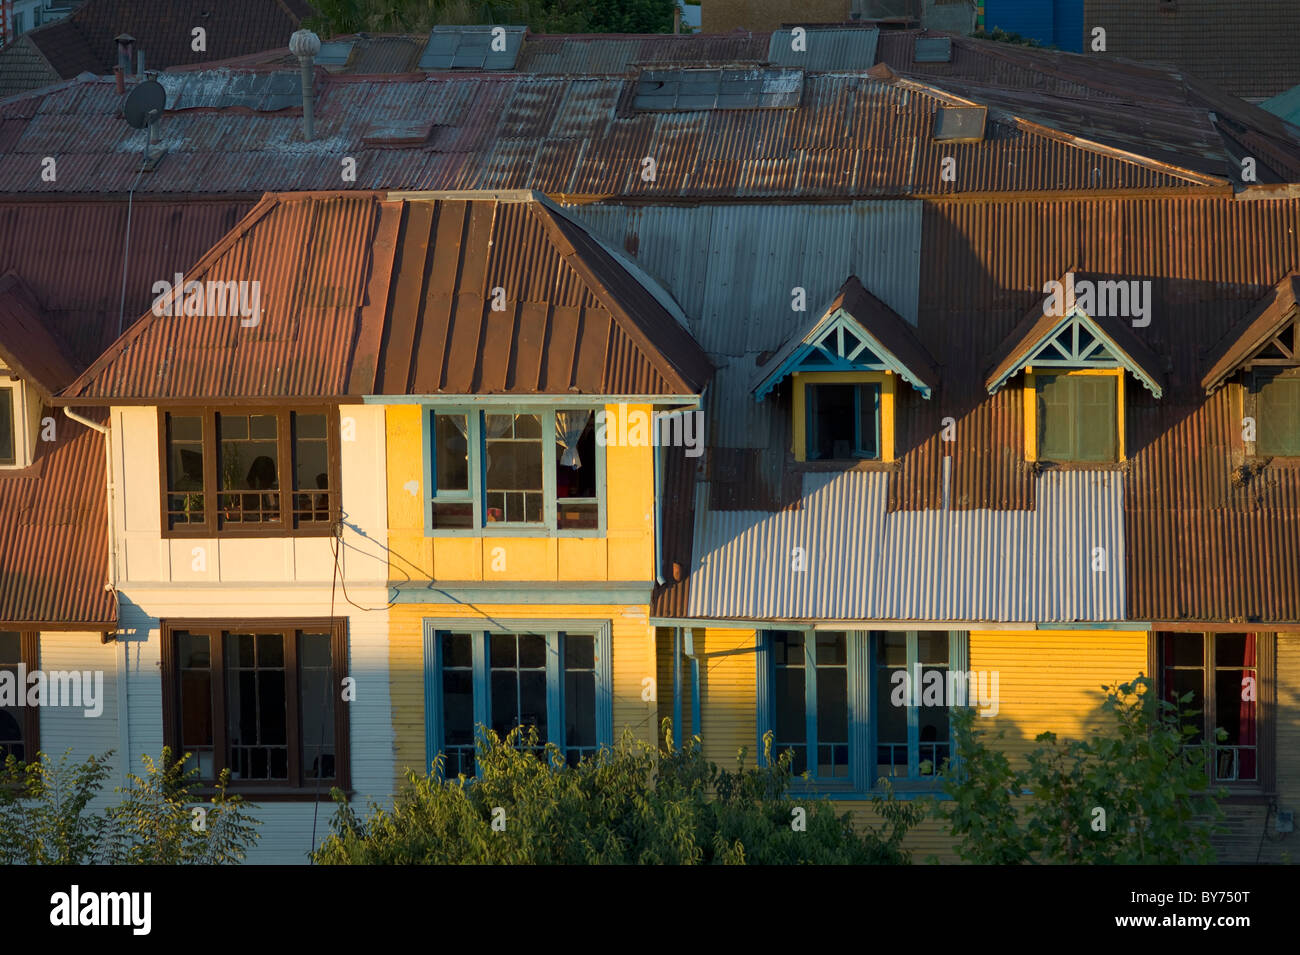 Old house in Viña del Mar, Chile - Stock Image